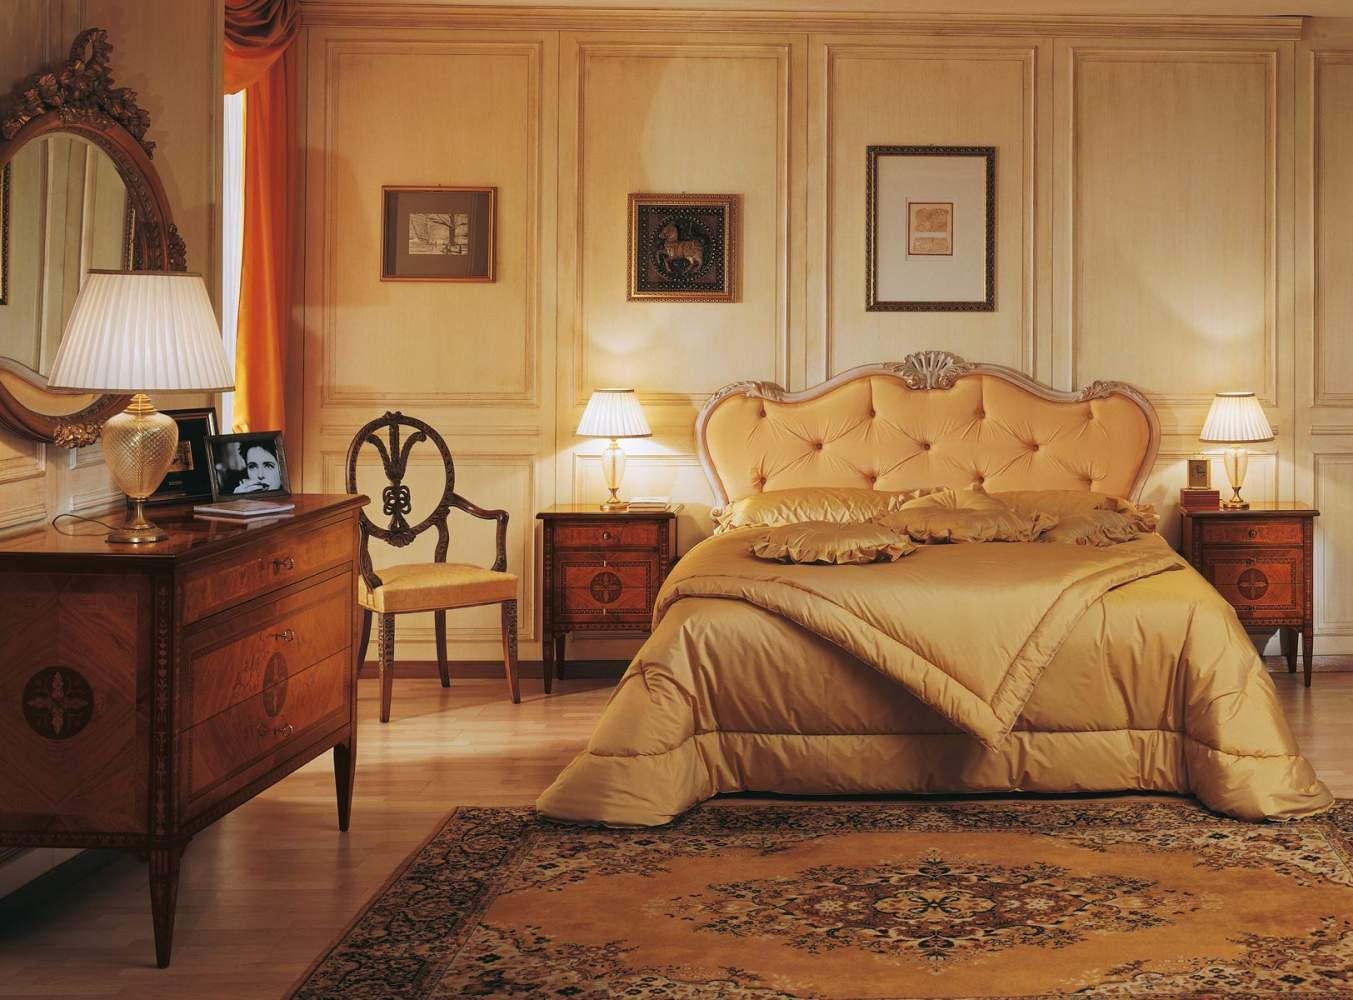 Bedroom Maggiolini style with chest of drawers and night tables in walnut richly inlaid